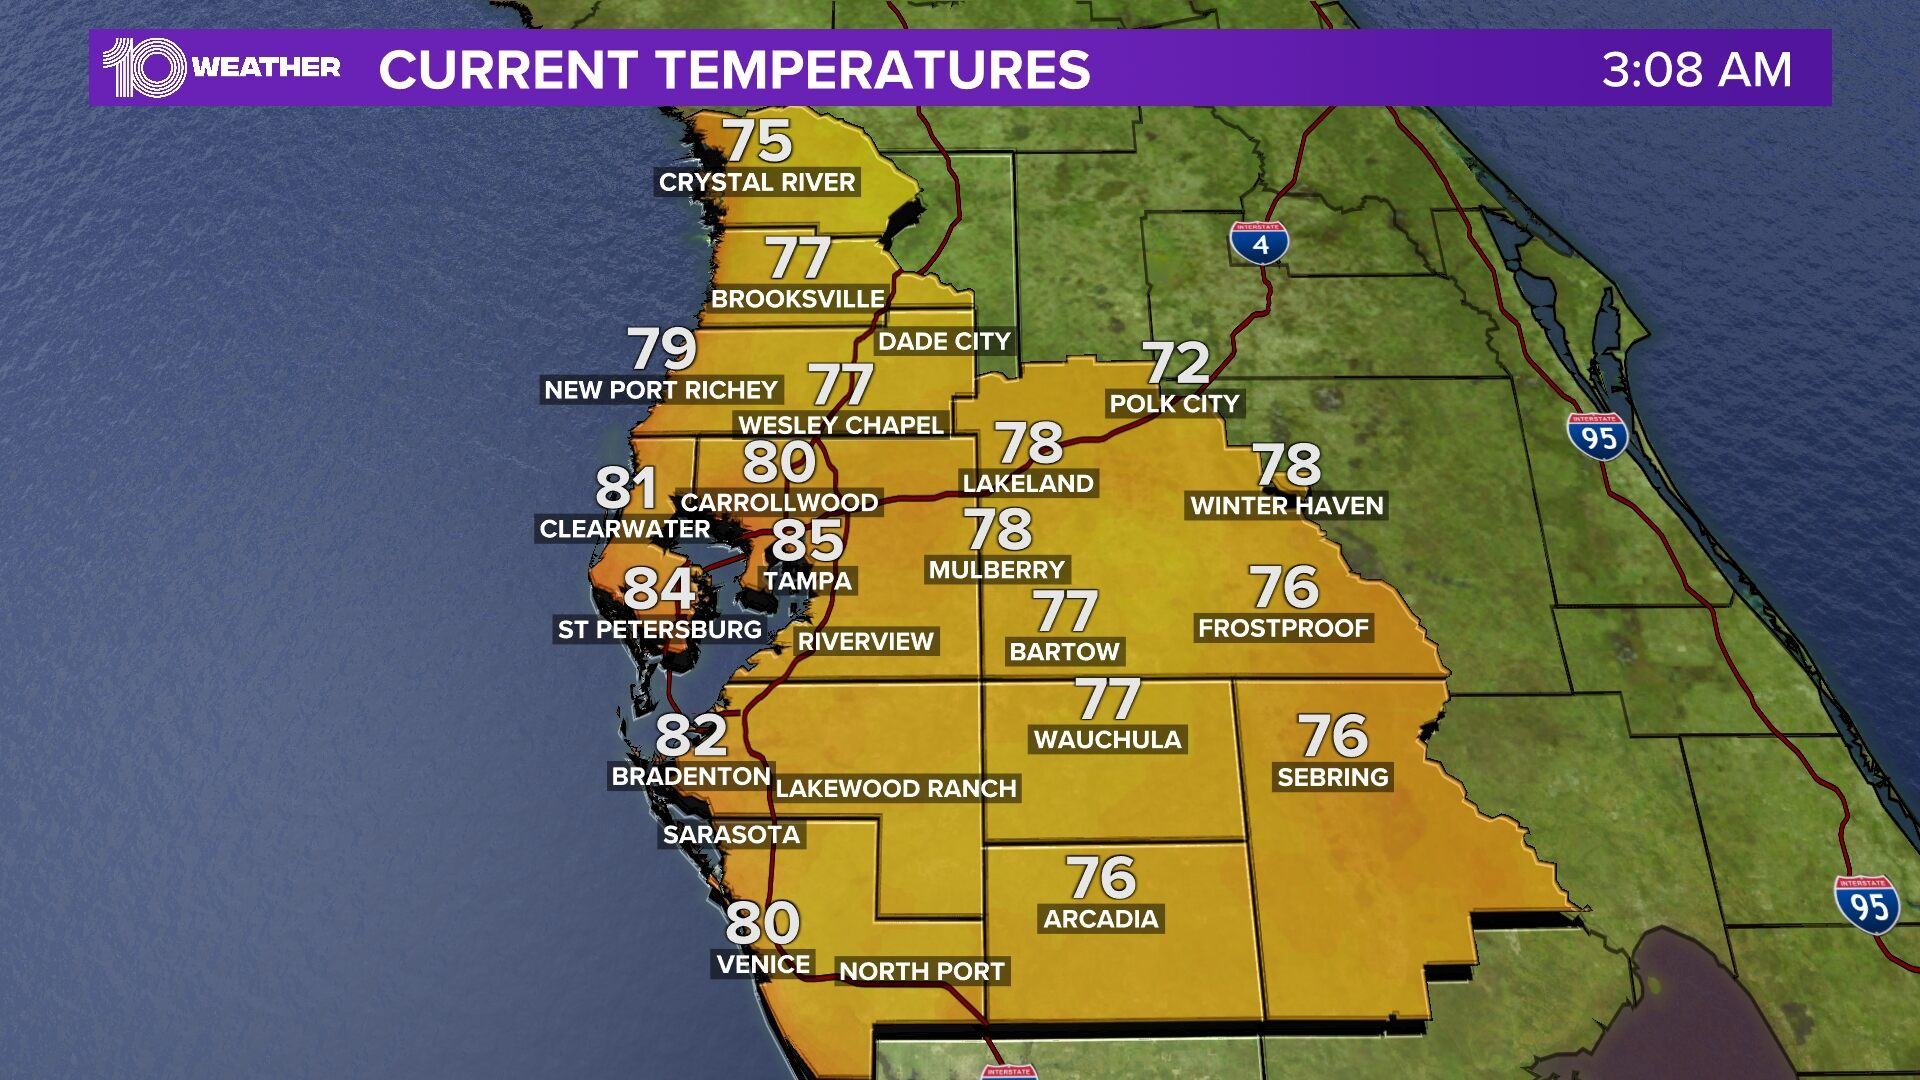 Weather Maps on 10NEWS in Tampa Bay and Sarasota